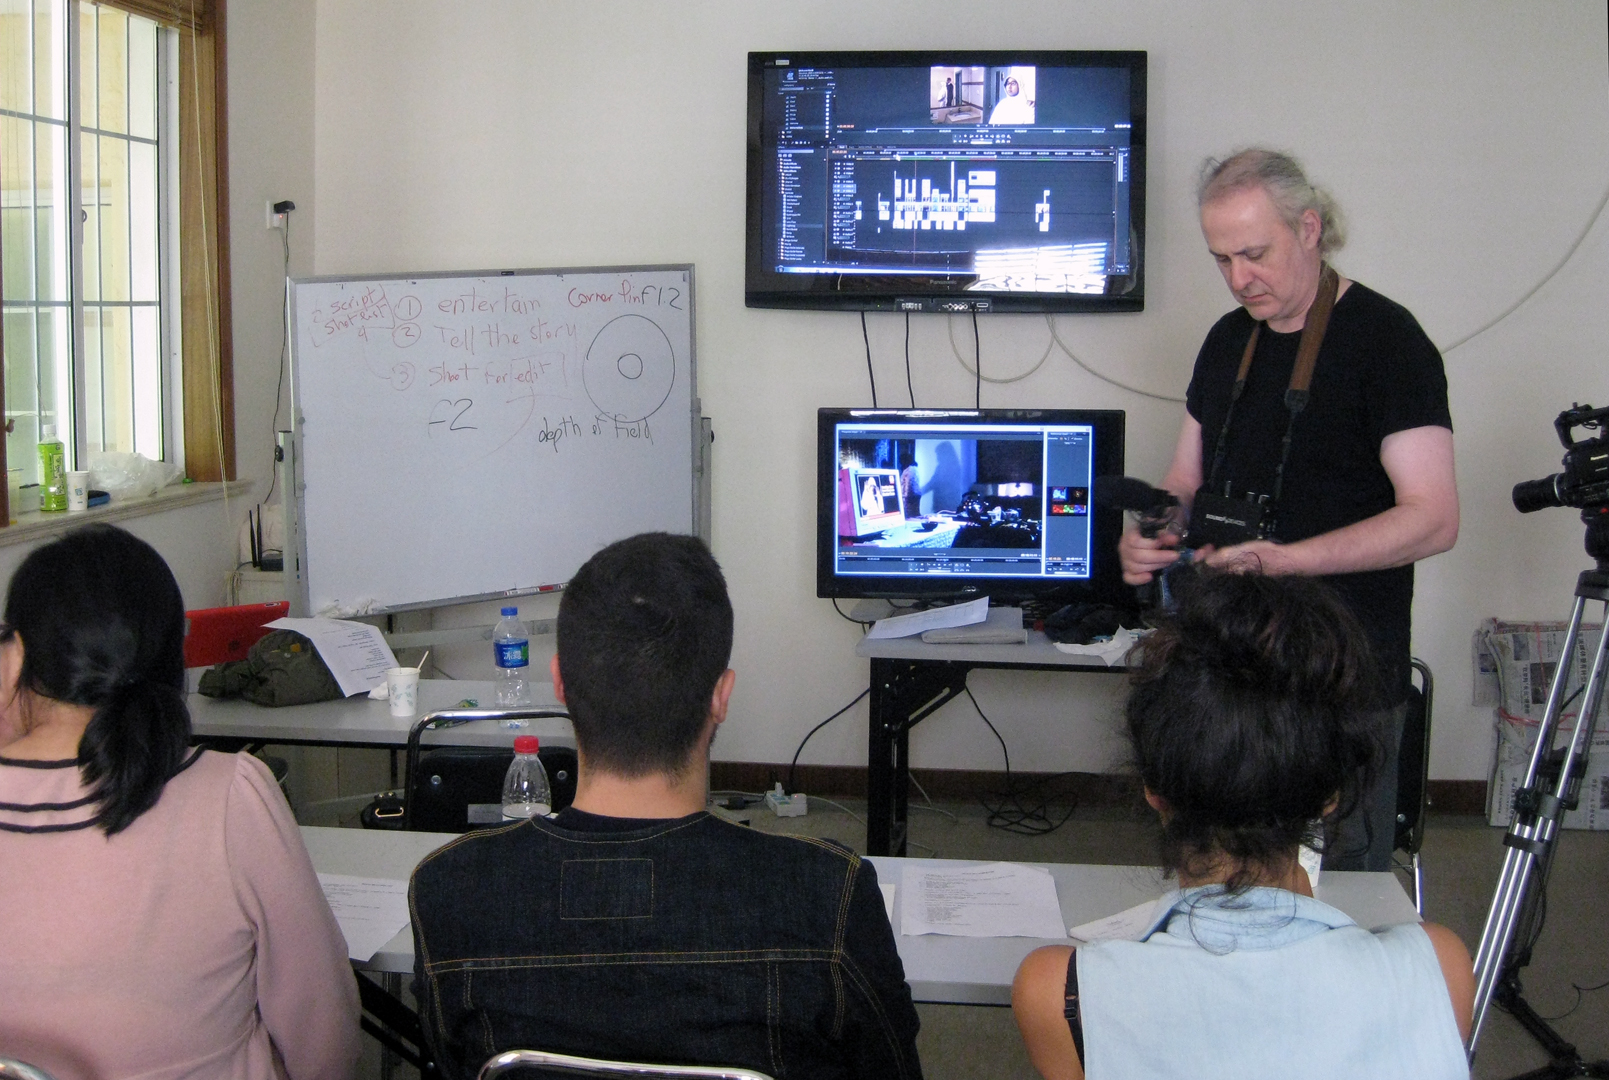 Speaking about editing of the short film